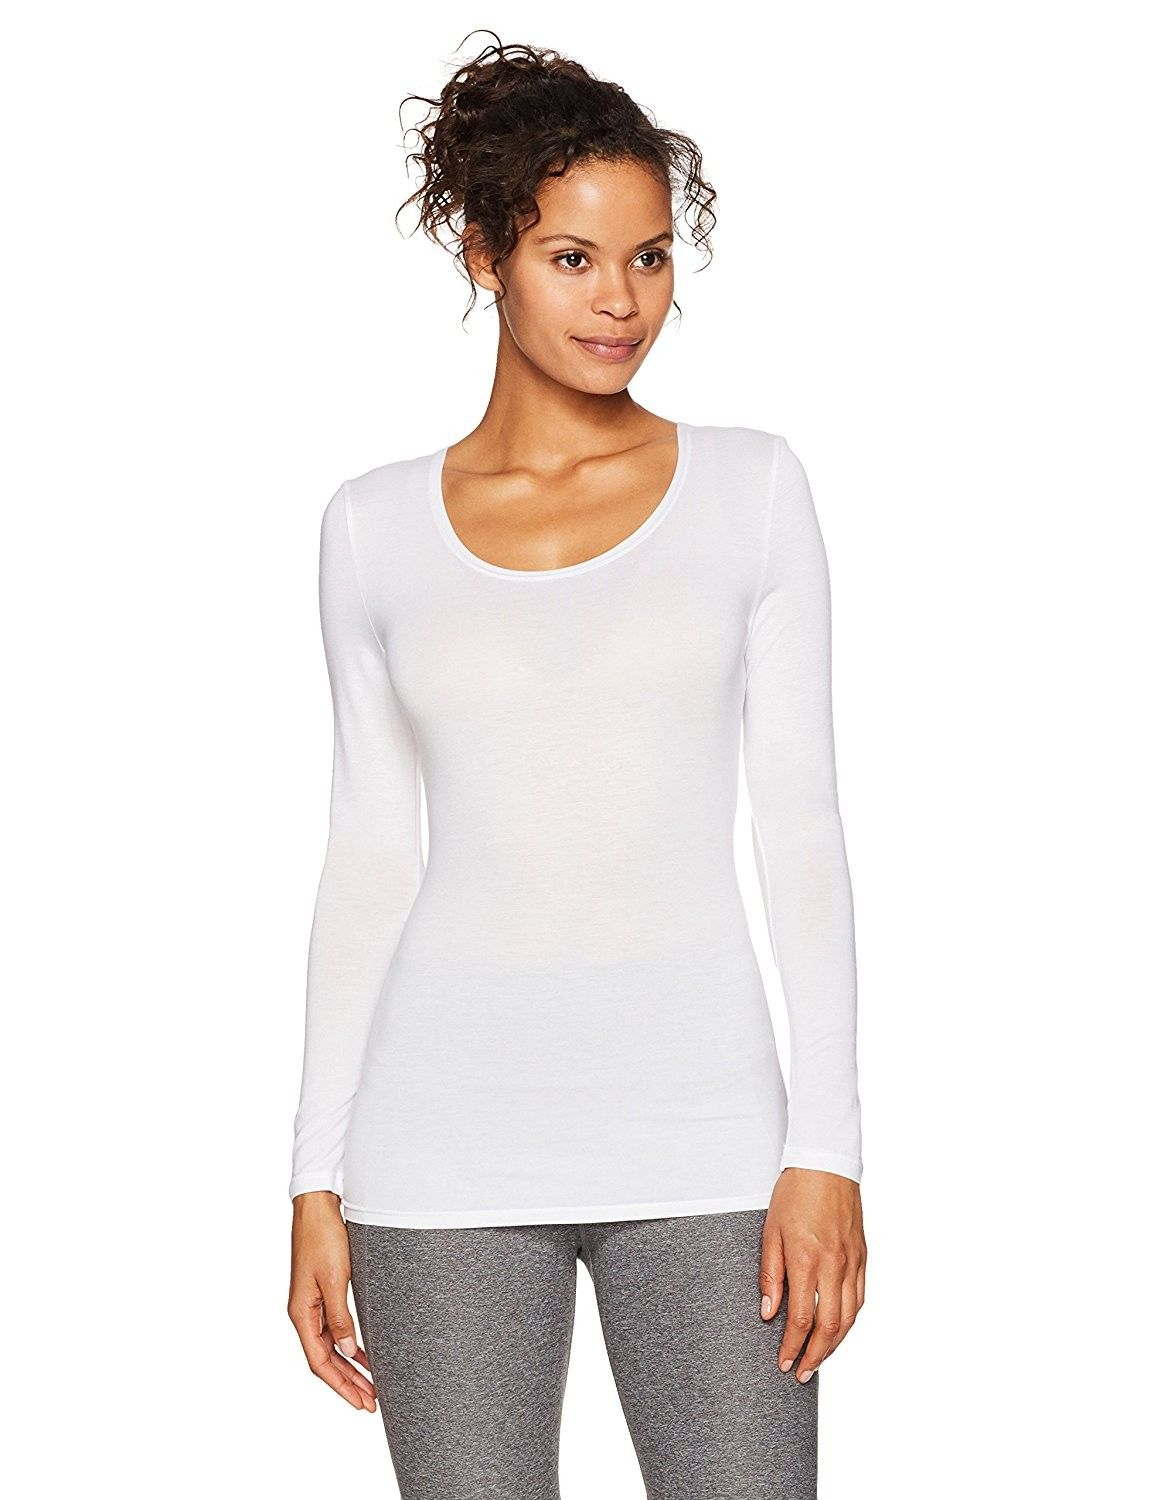 Women's Heat Scoop Neck Thermal Top - White - CF186K6LWNR | Womens scoop  neck, Base layer clothing, Fashion clothes women